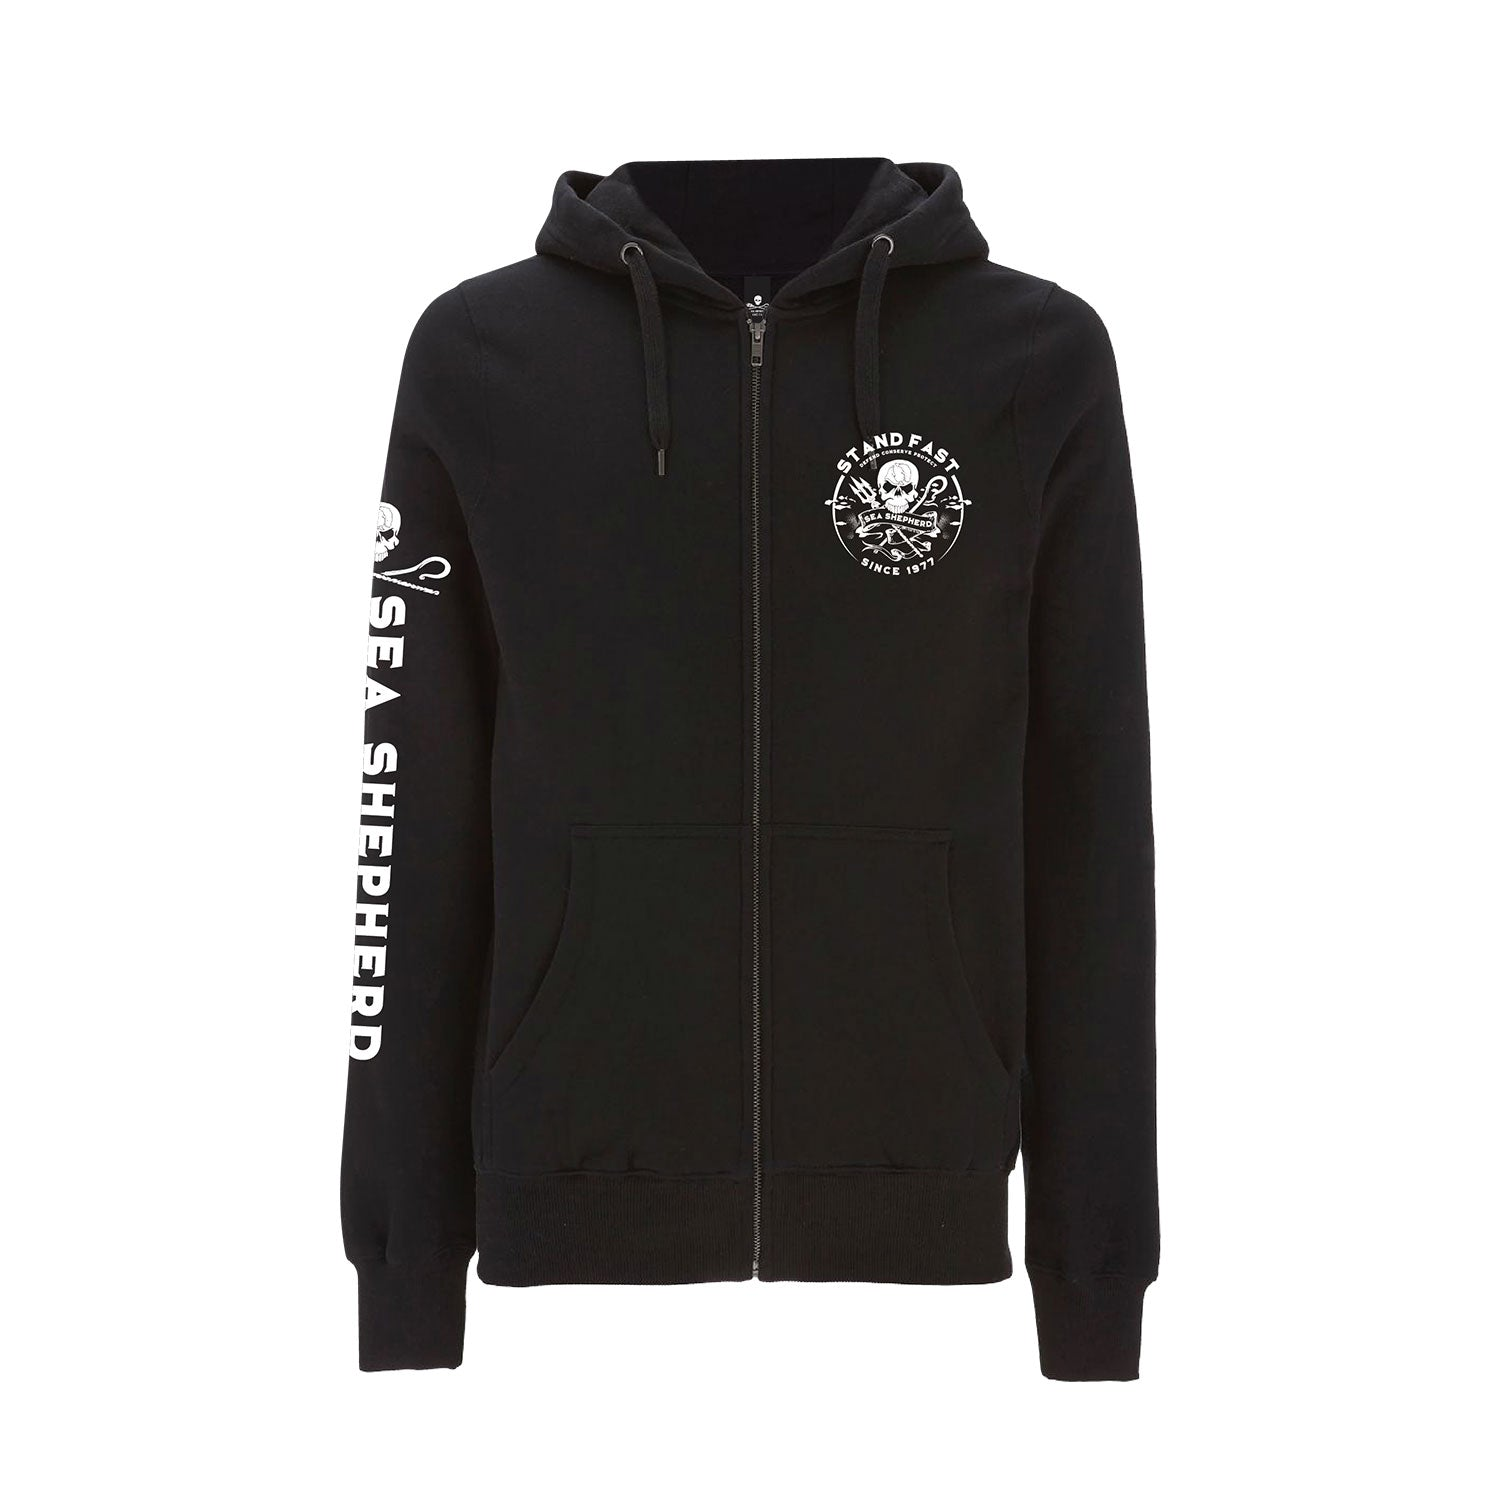 Sea Shepherd Defenders View Full Zip Hoody - Black